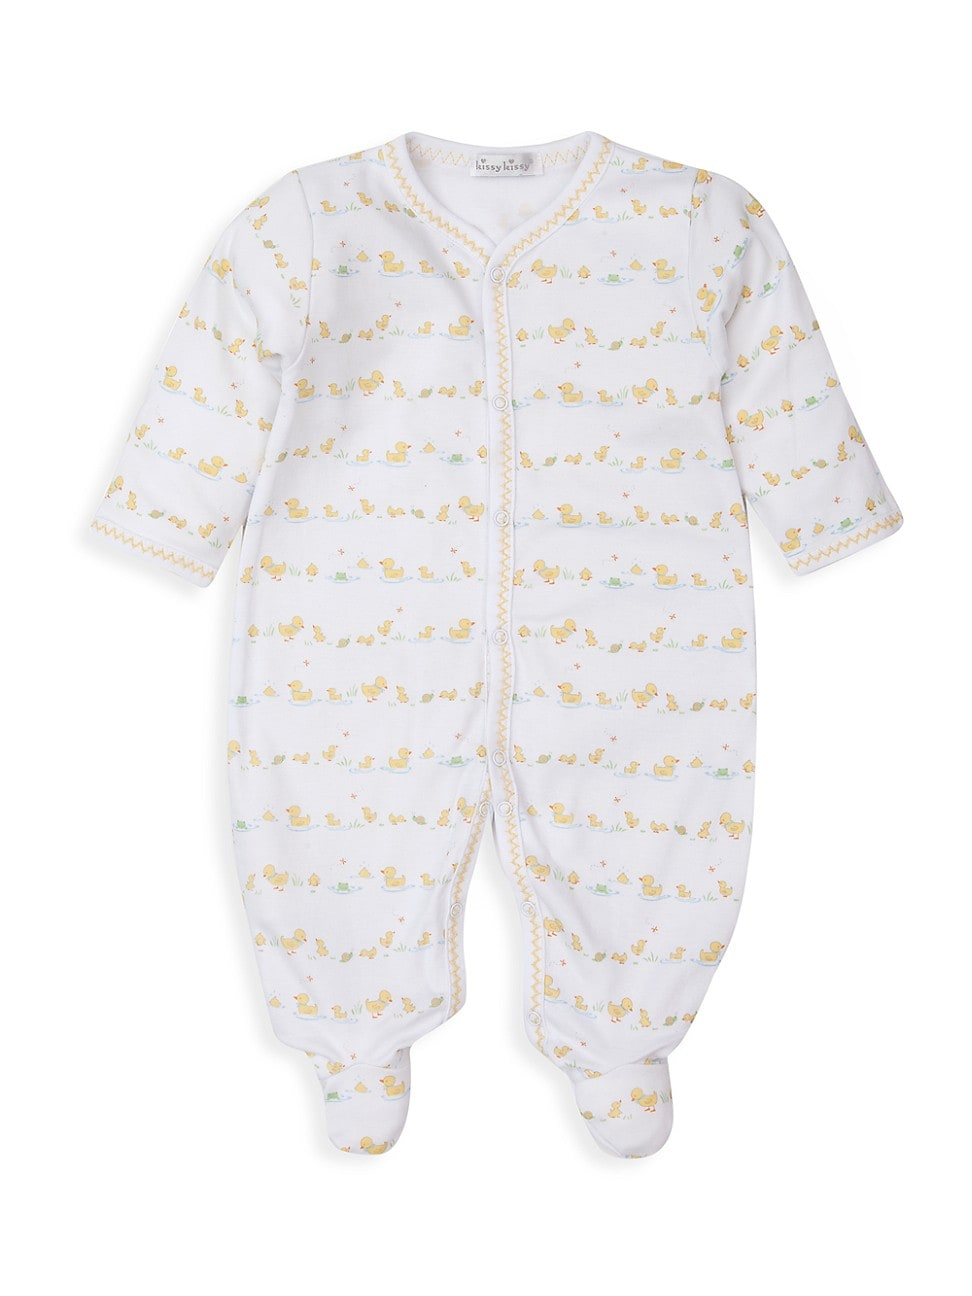 Kissy Kissy Cottons BABY'S DILLY DALLY DUCKIES PRINT FOOTIE